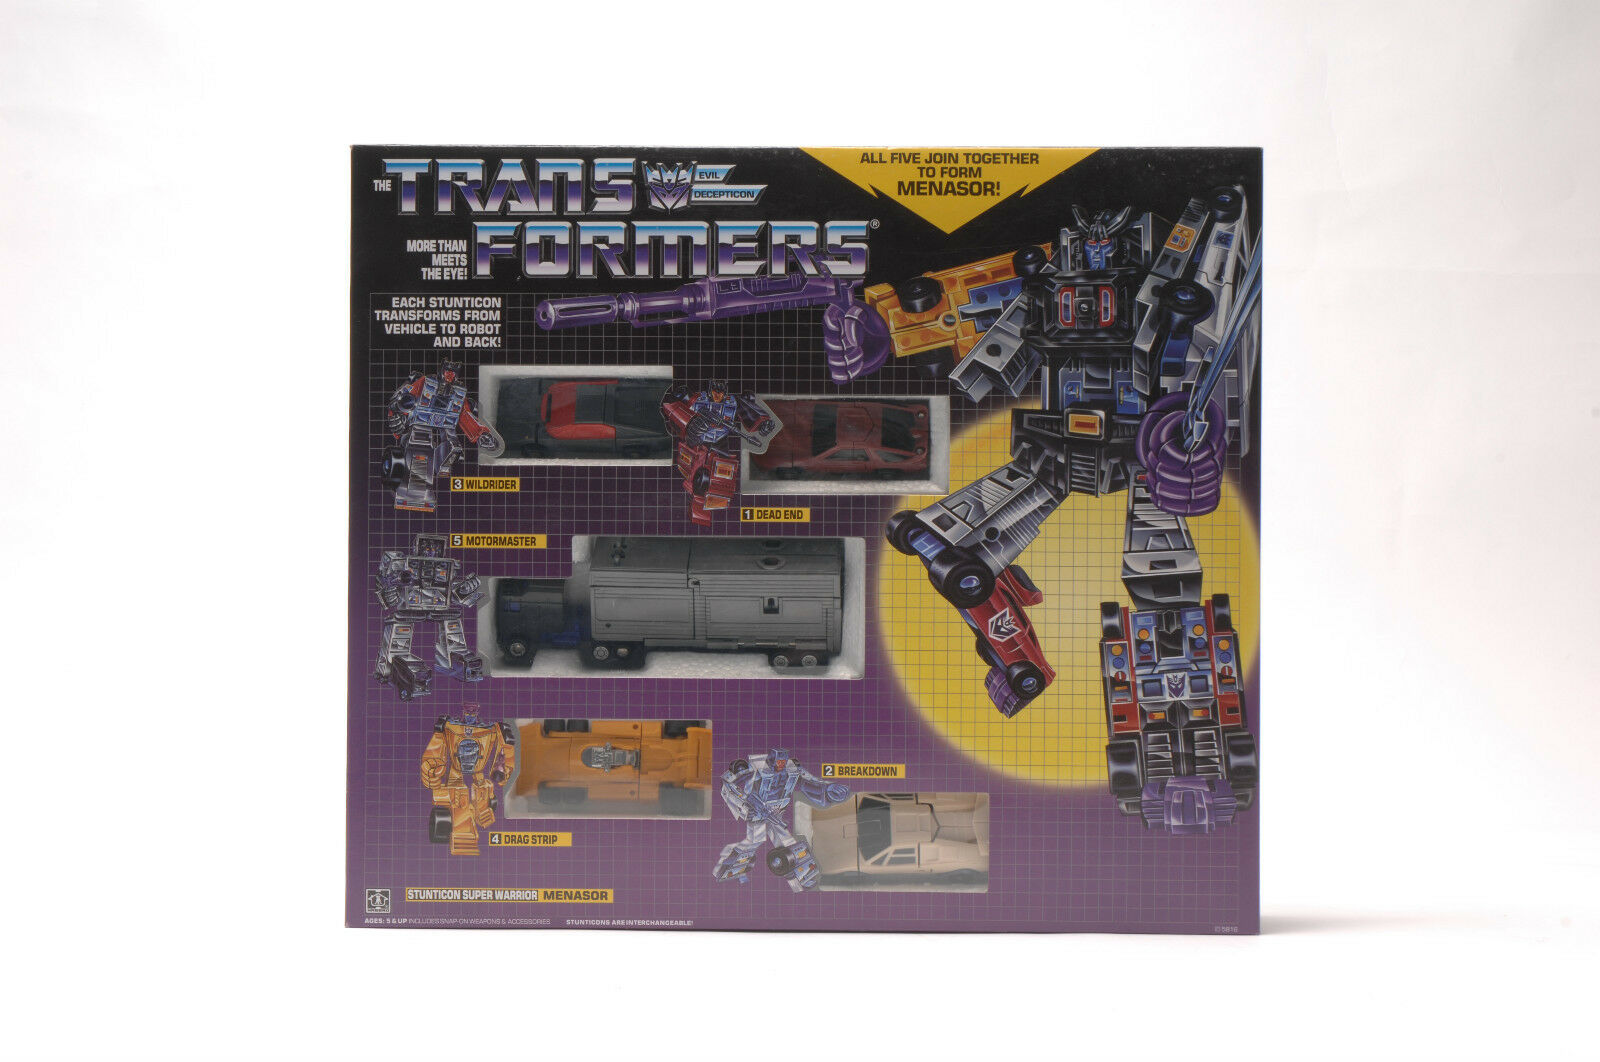 Transformers  Uomoasor G1 Stunticon  Super Guerriero Reissue Regalo Replica